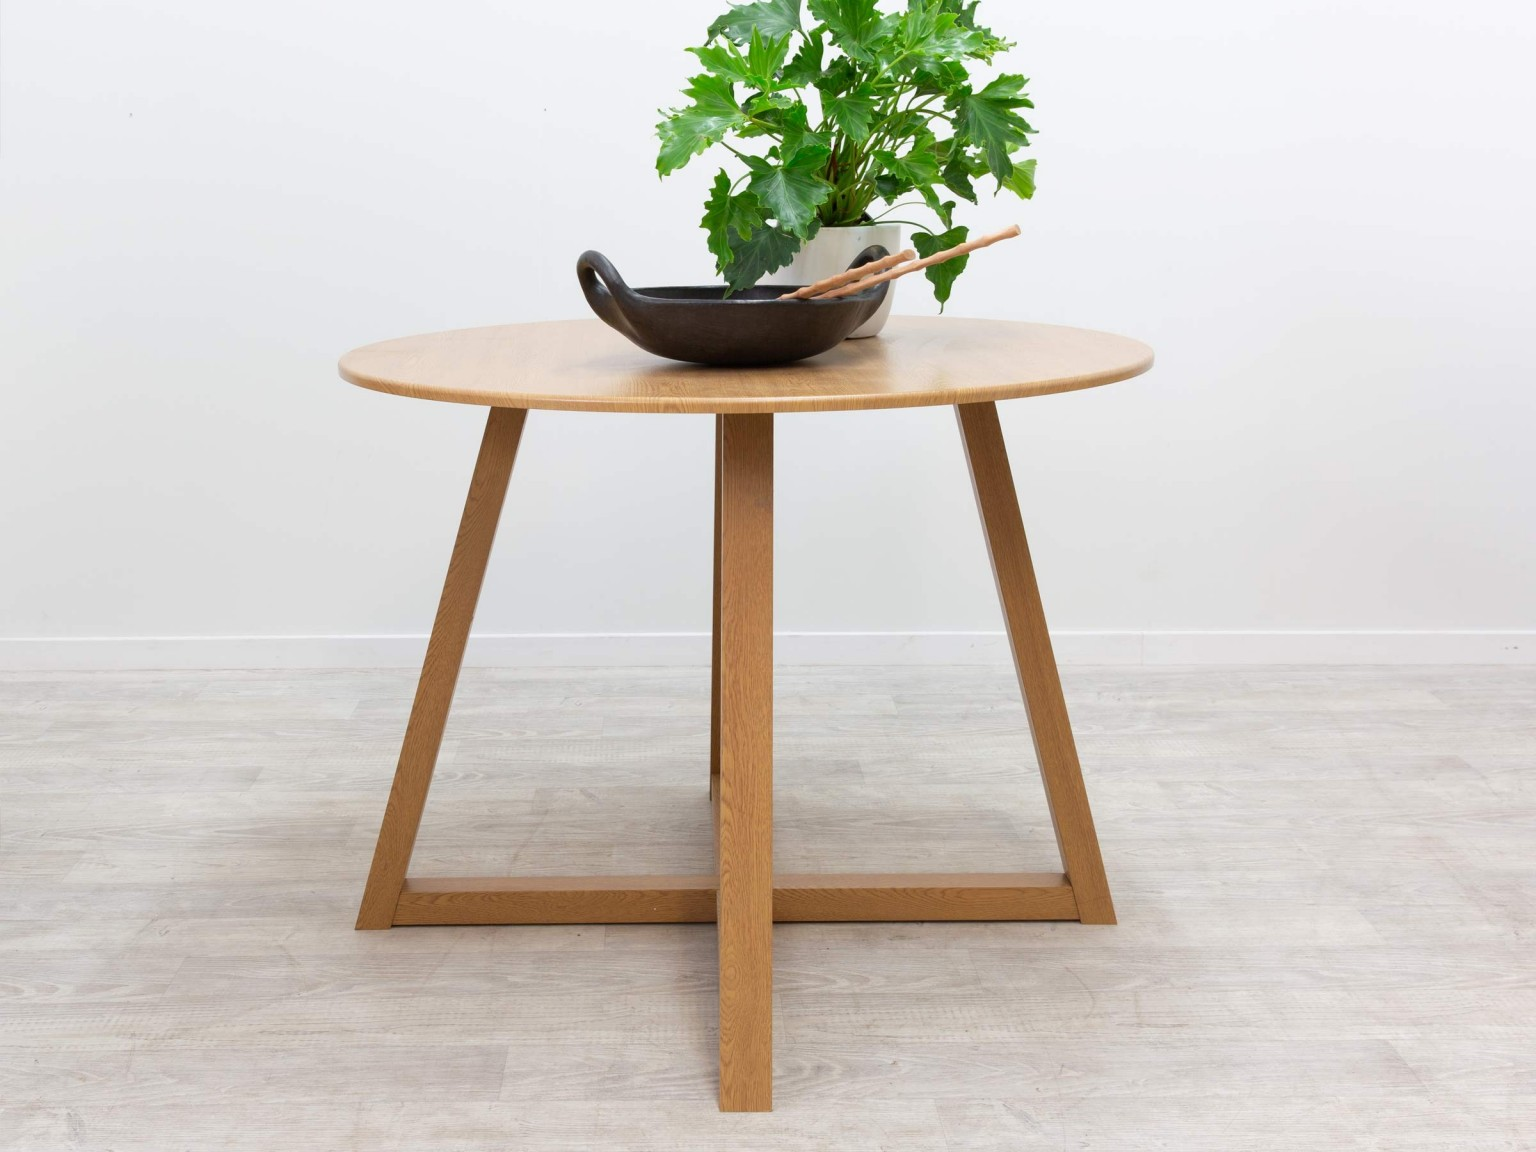 avalon dining table furniture mocka trestle afterpay natural baby shower venues cape town little tikes large nic target kitchen sets modern rustic coffee legs ashley chairs runner